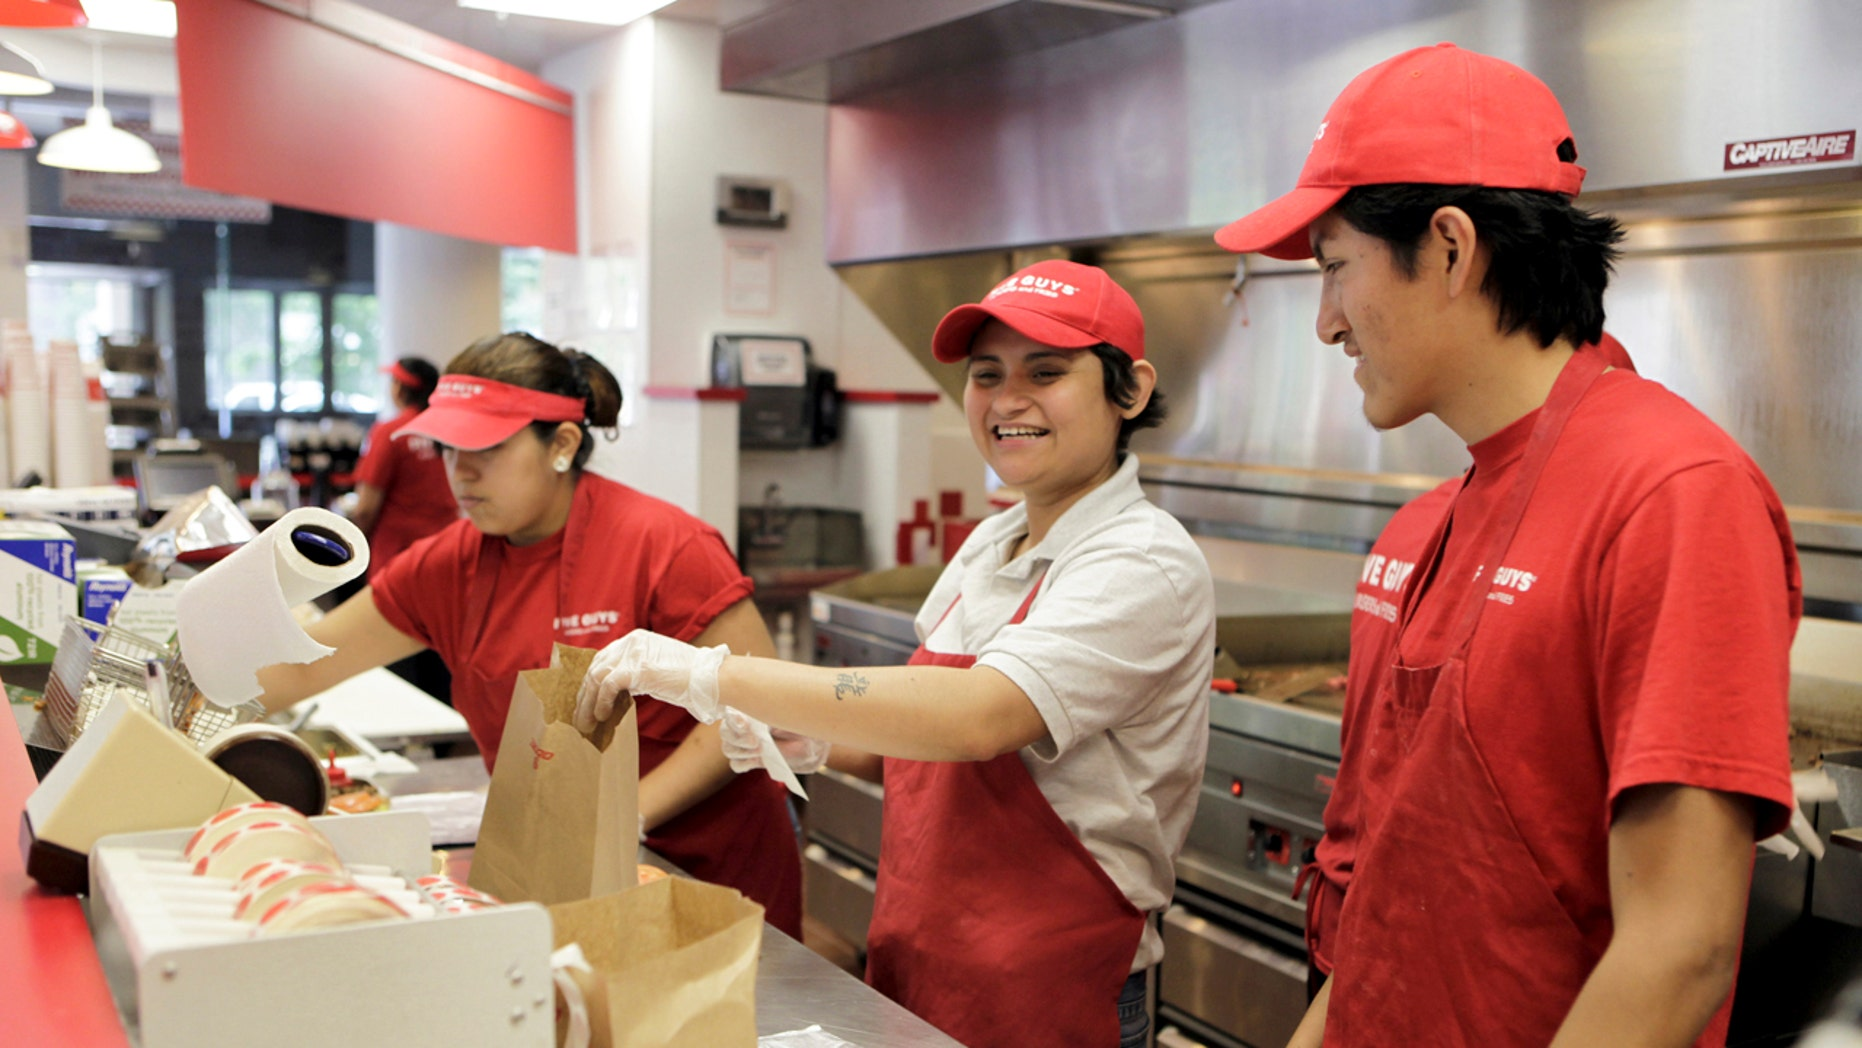 Manager Kely Guardado (C) prepares hamburgers at a Five Guys restaurant in Washington, May 26, 2010. The weak U.S. economy is no match for fast-growing Five Guys Burgers and Fries, where the standard hamburger has two patties and french fries are served in a cup with an extra scoop on the side for good measure. Picture taken May 26, 2010. To match Analysis RESTAURANTS/   REUTERS/Yuri Gripas (UNITED STATES - Tags: FOOD BUSINESS) - RTR2EFDK